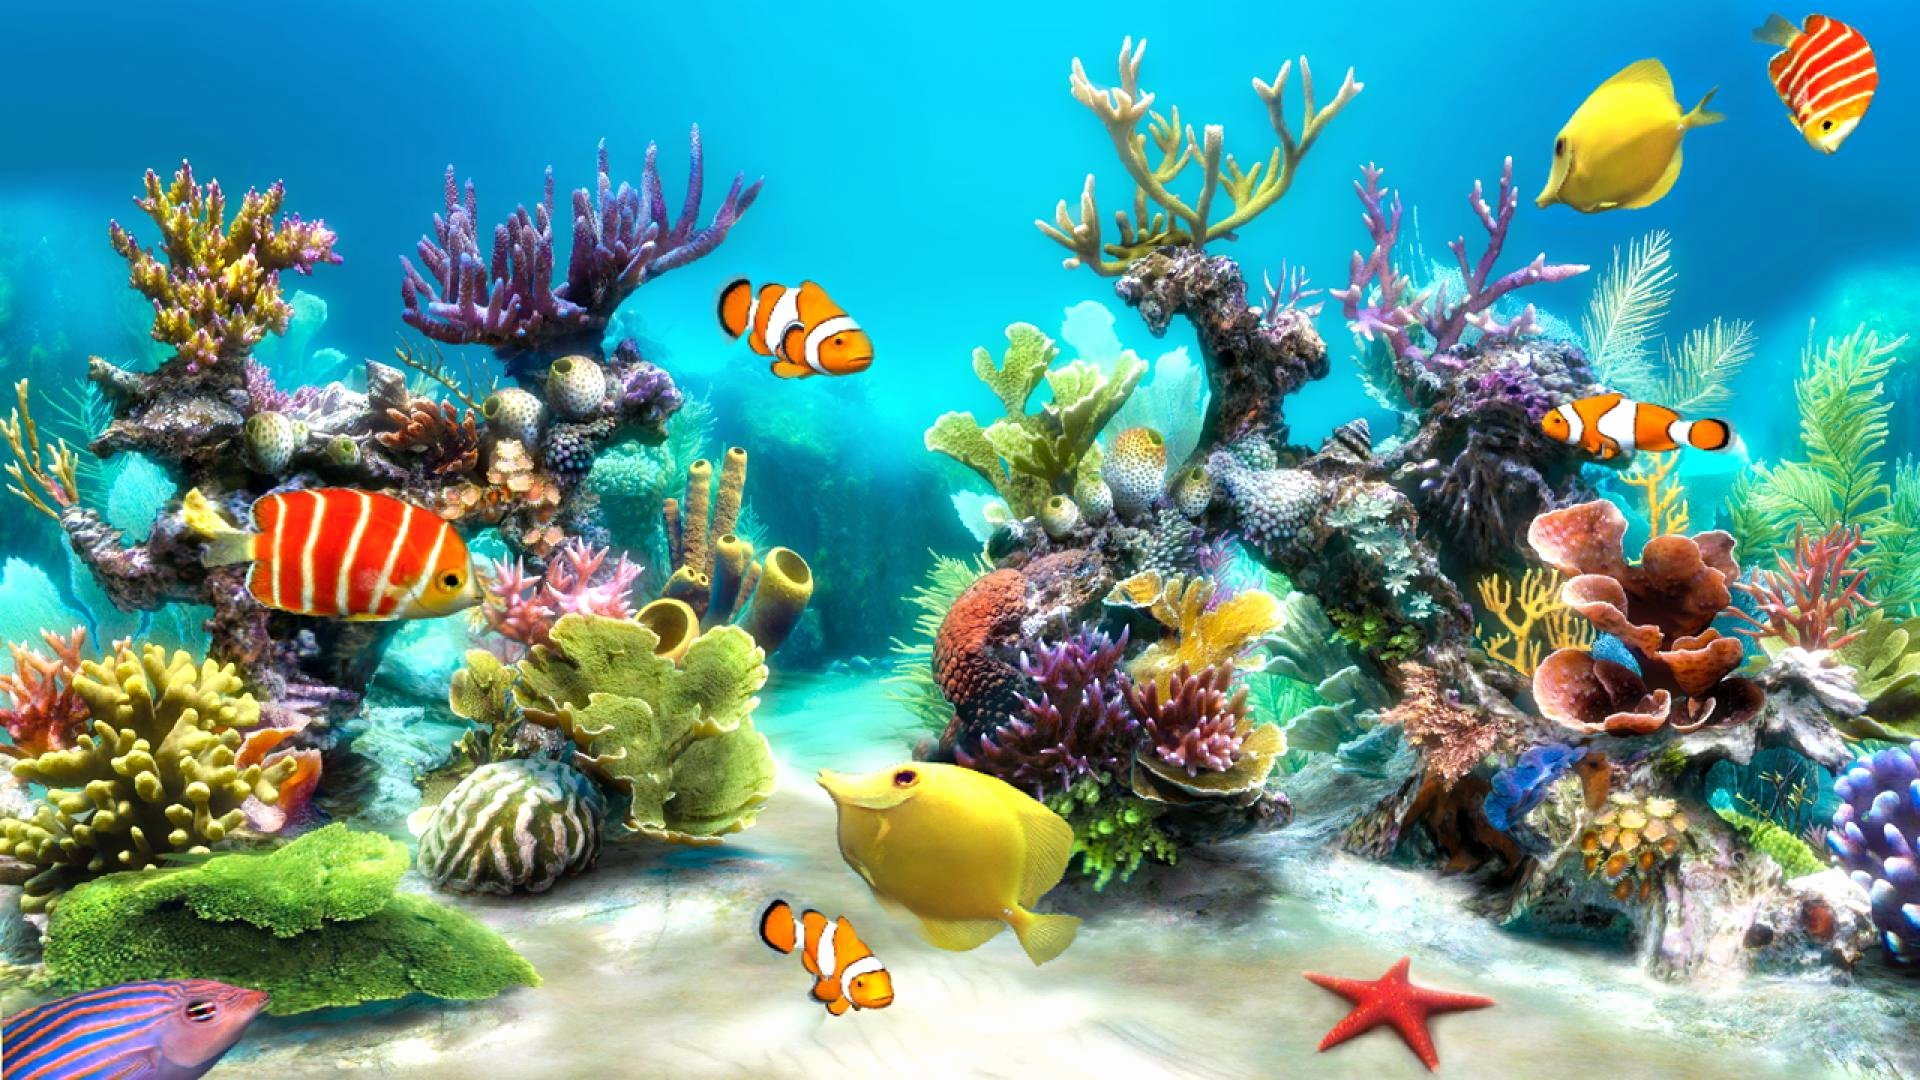 Backgrounds for Fish Tanks Unique Fish Tank Backgrounds